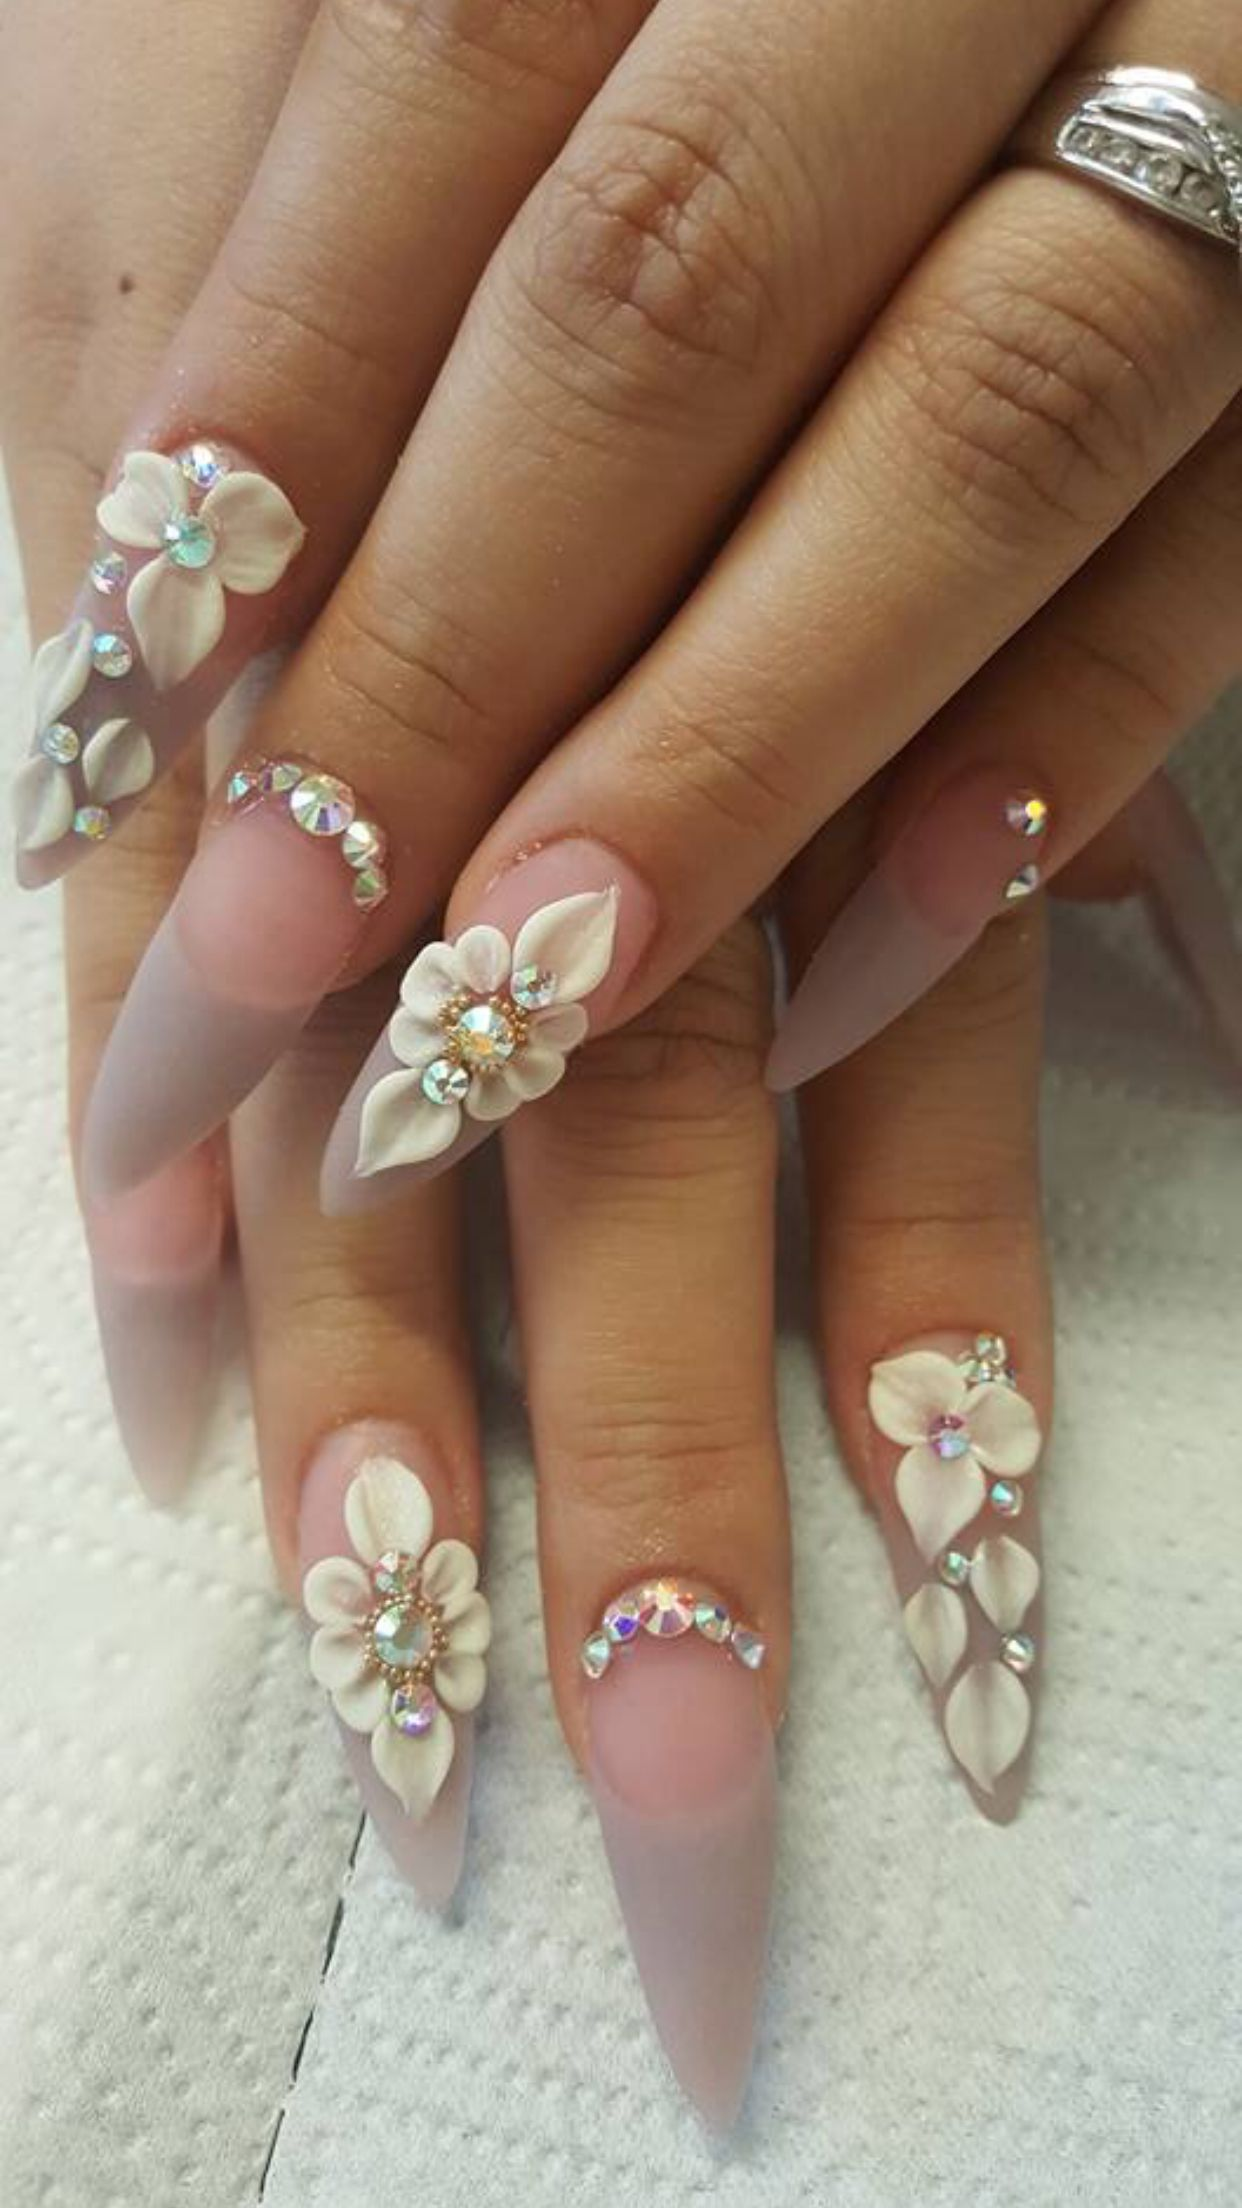 Theodora With Images Flower Nails 3d Nail Designs